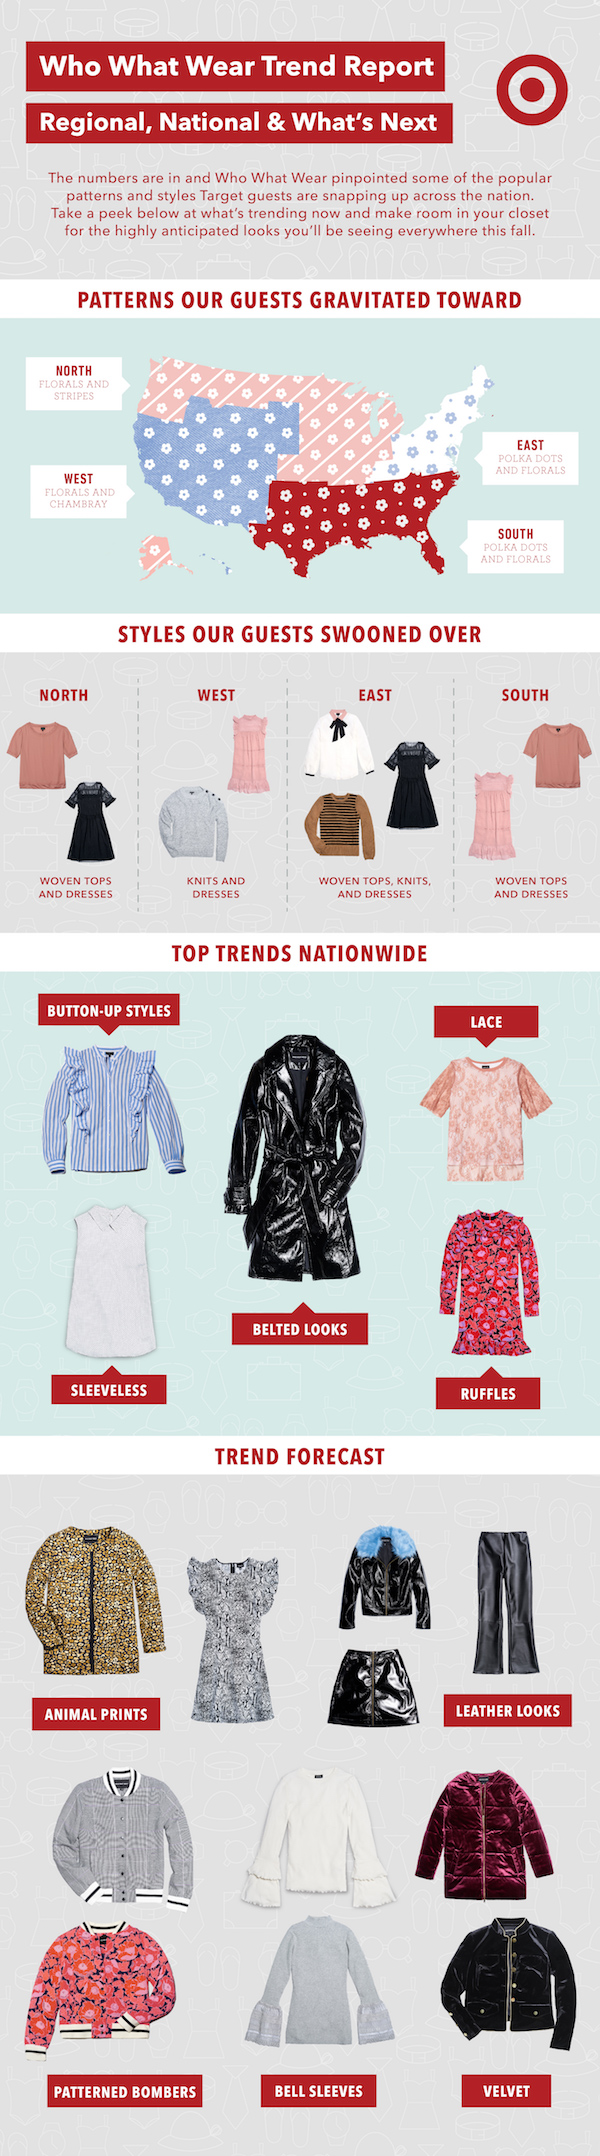 Who What Wear trend report infographic